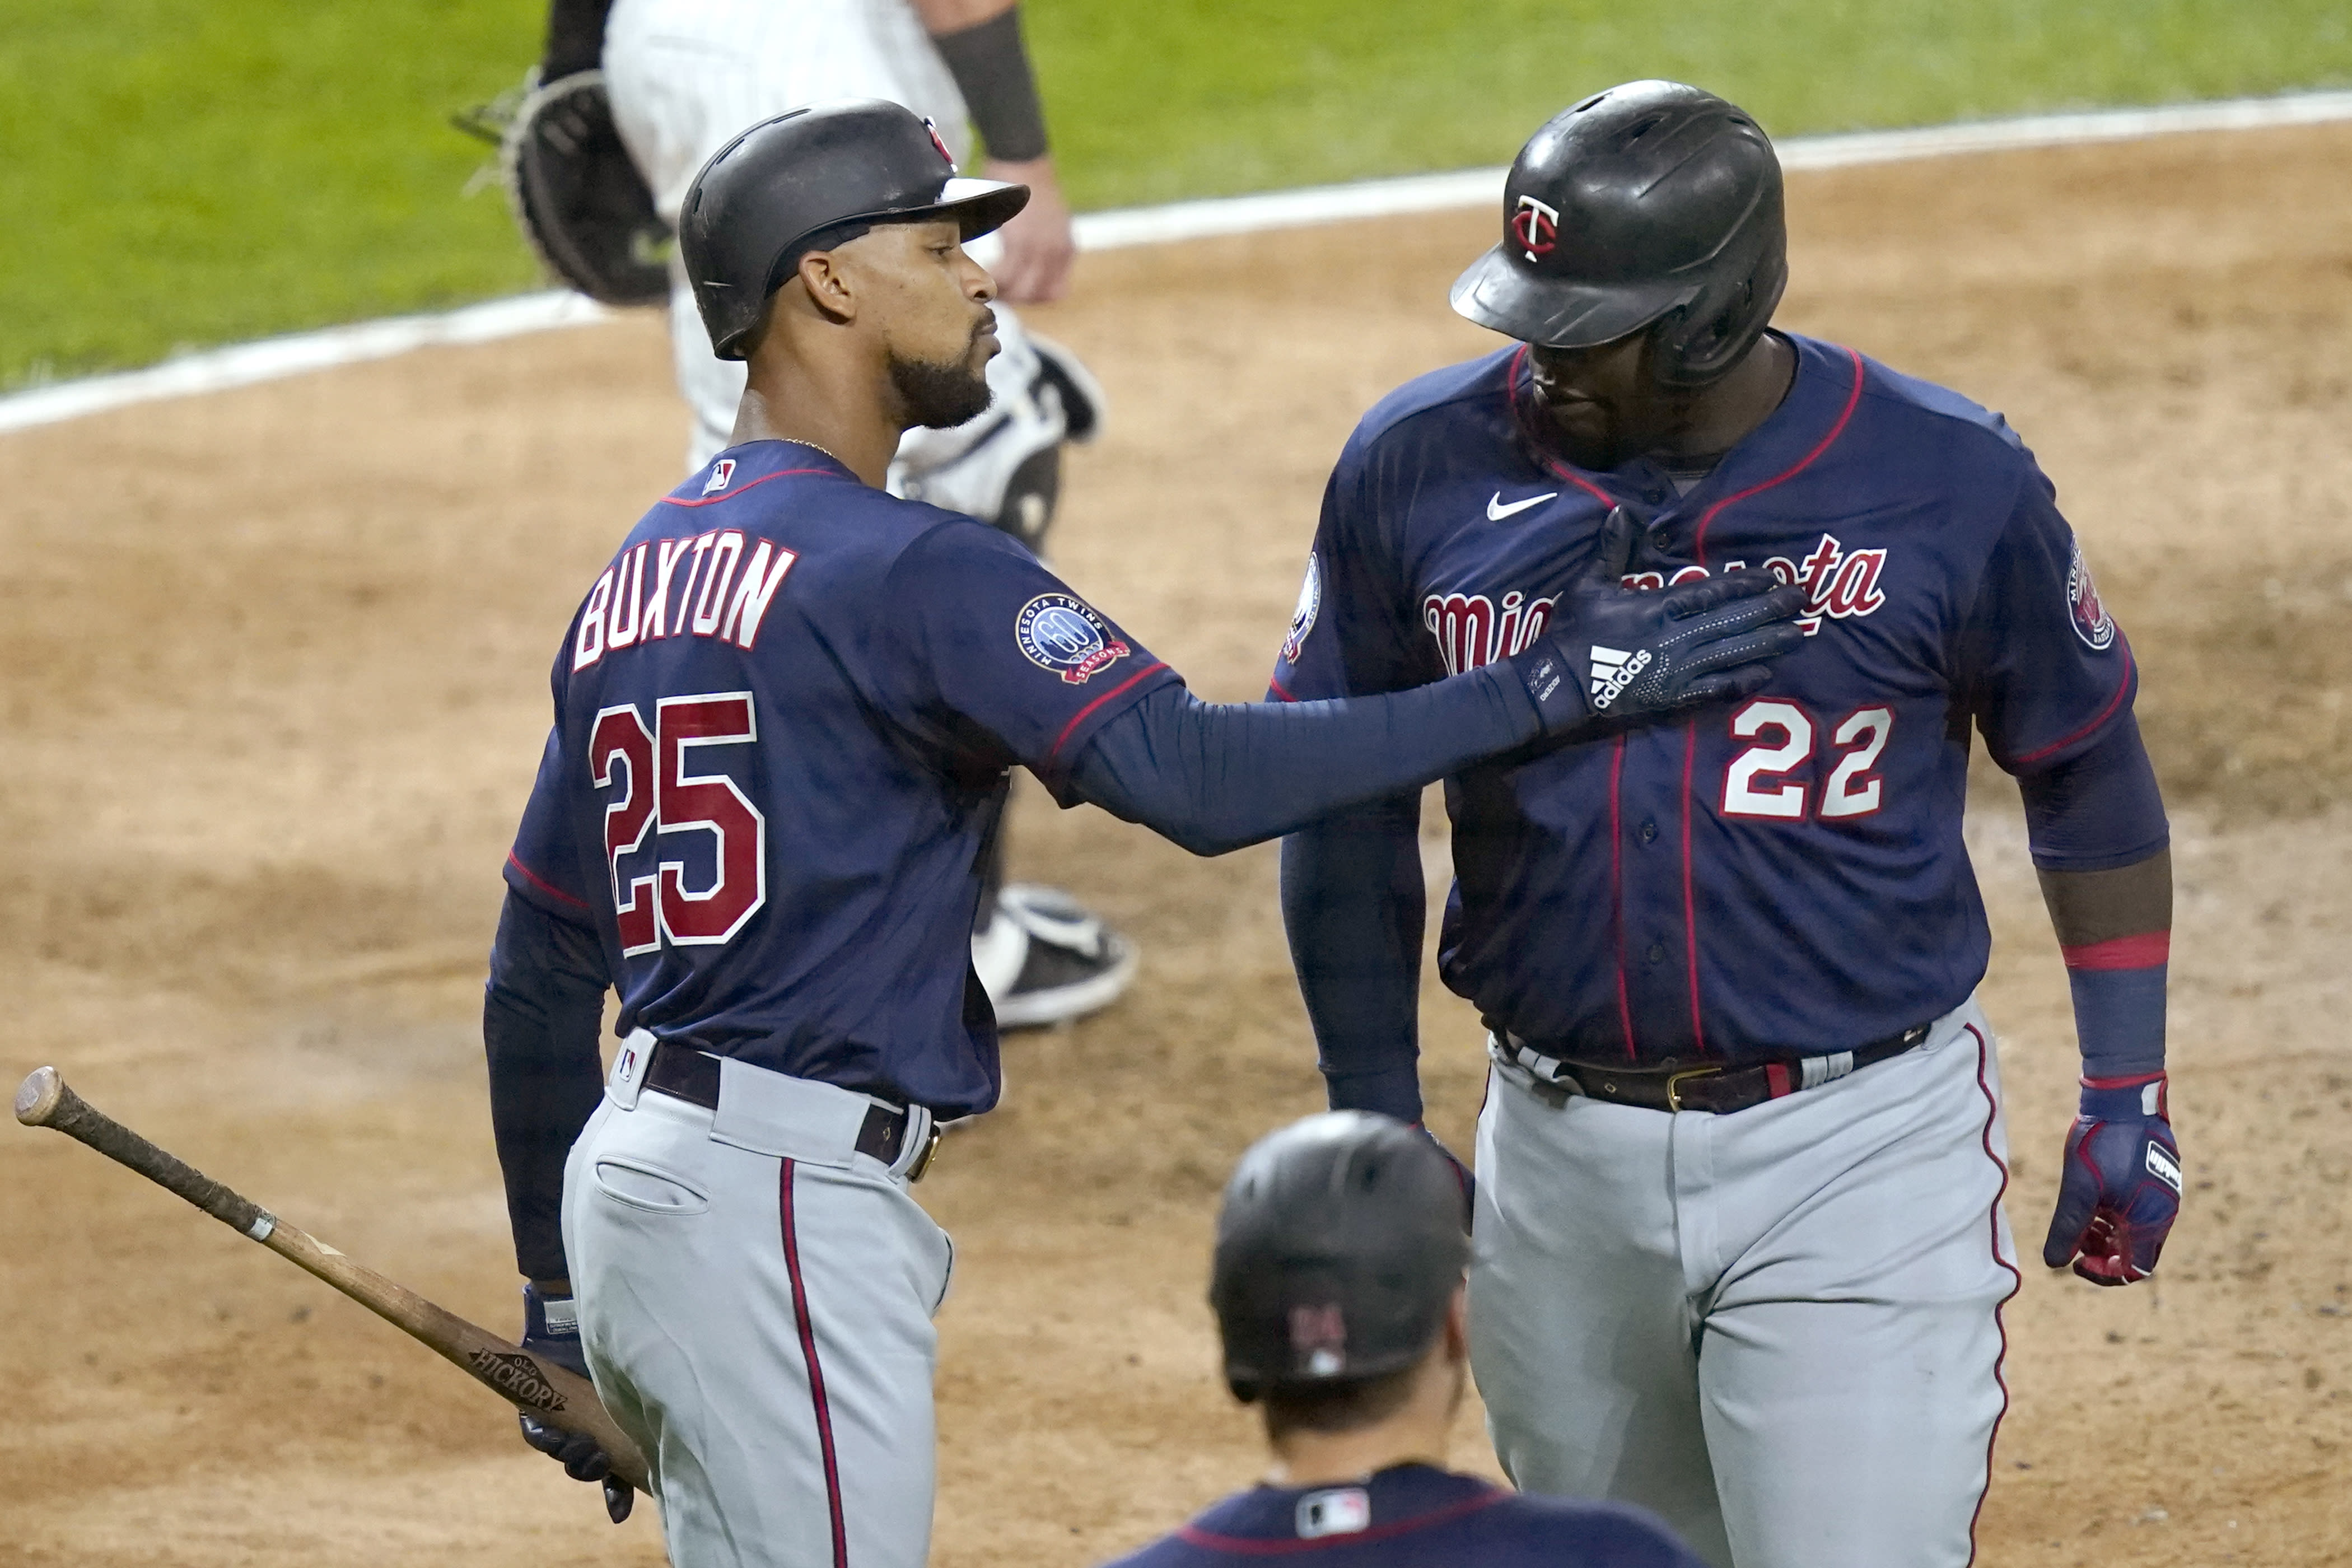 Minnesota Twins' Byron Buxton (25) greets Miguel Sano at home after Sano's two-run home run off Chicago White Sox relief pitcher Matt Foster during the eighth inning of a baseball game Wednesday, Sept. 16, 2020, in Chicago. Josh Donaldson scored on the homer. (AP Photo/Charles Rex Arbogast)